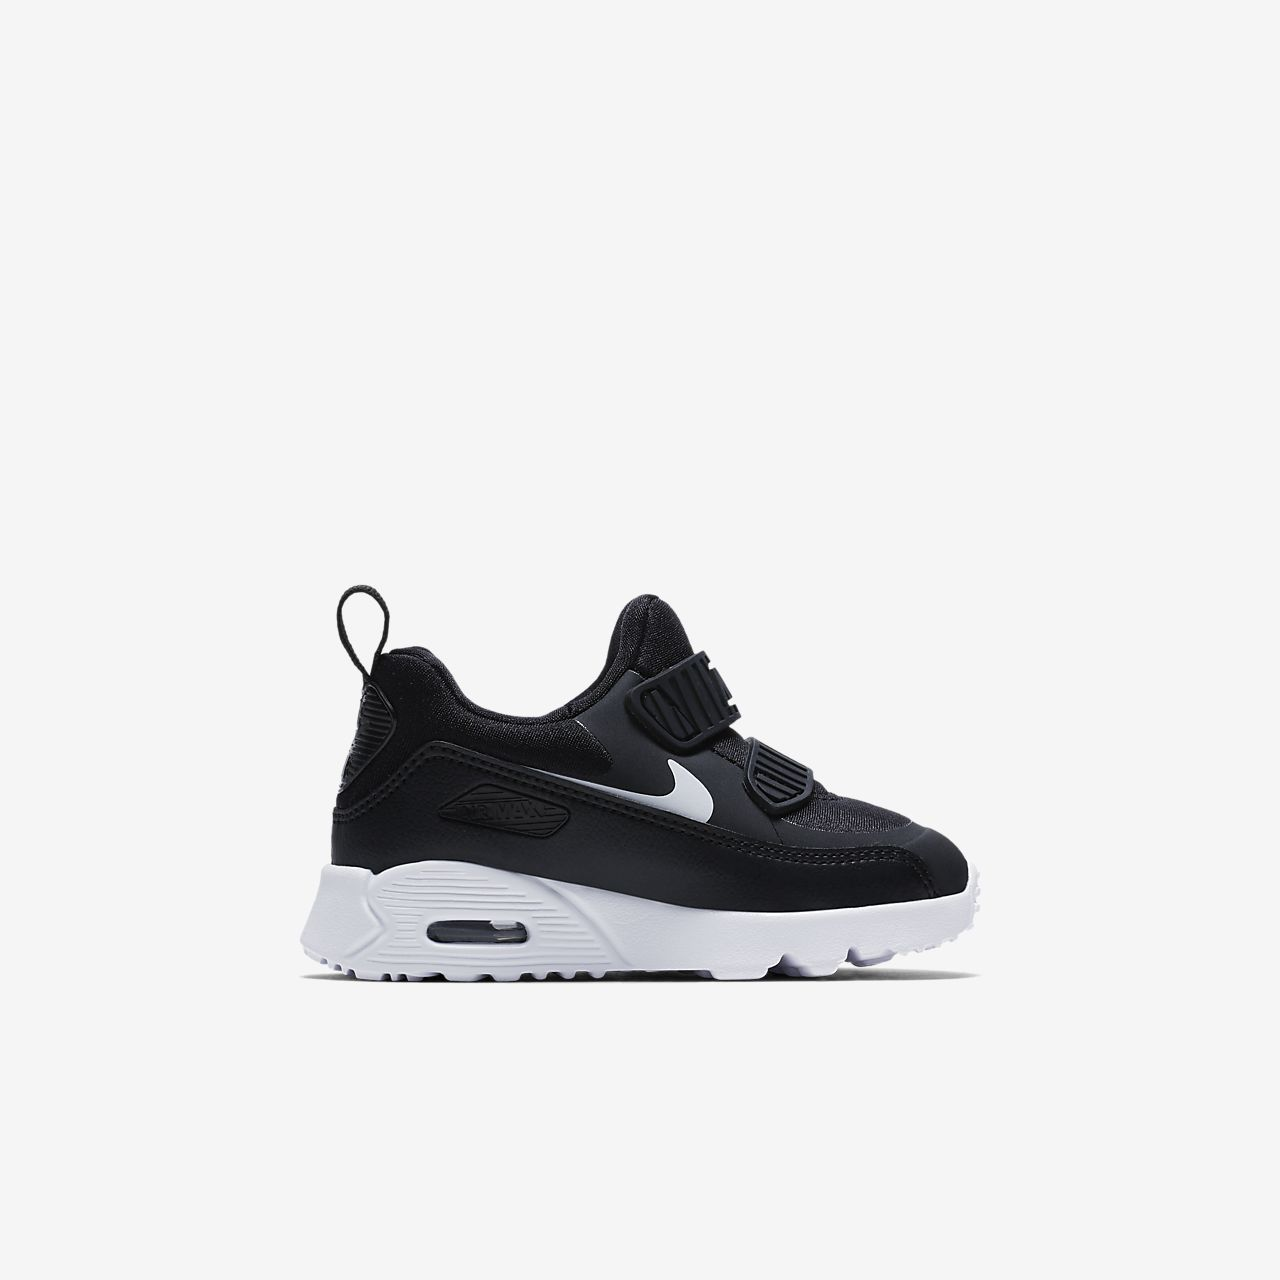 ... Nike Air Max Tiny 90 Infant/Toddler Shoe